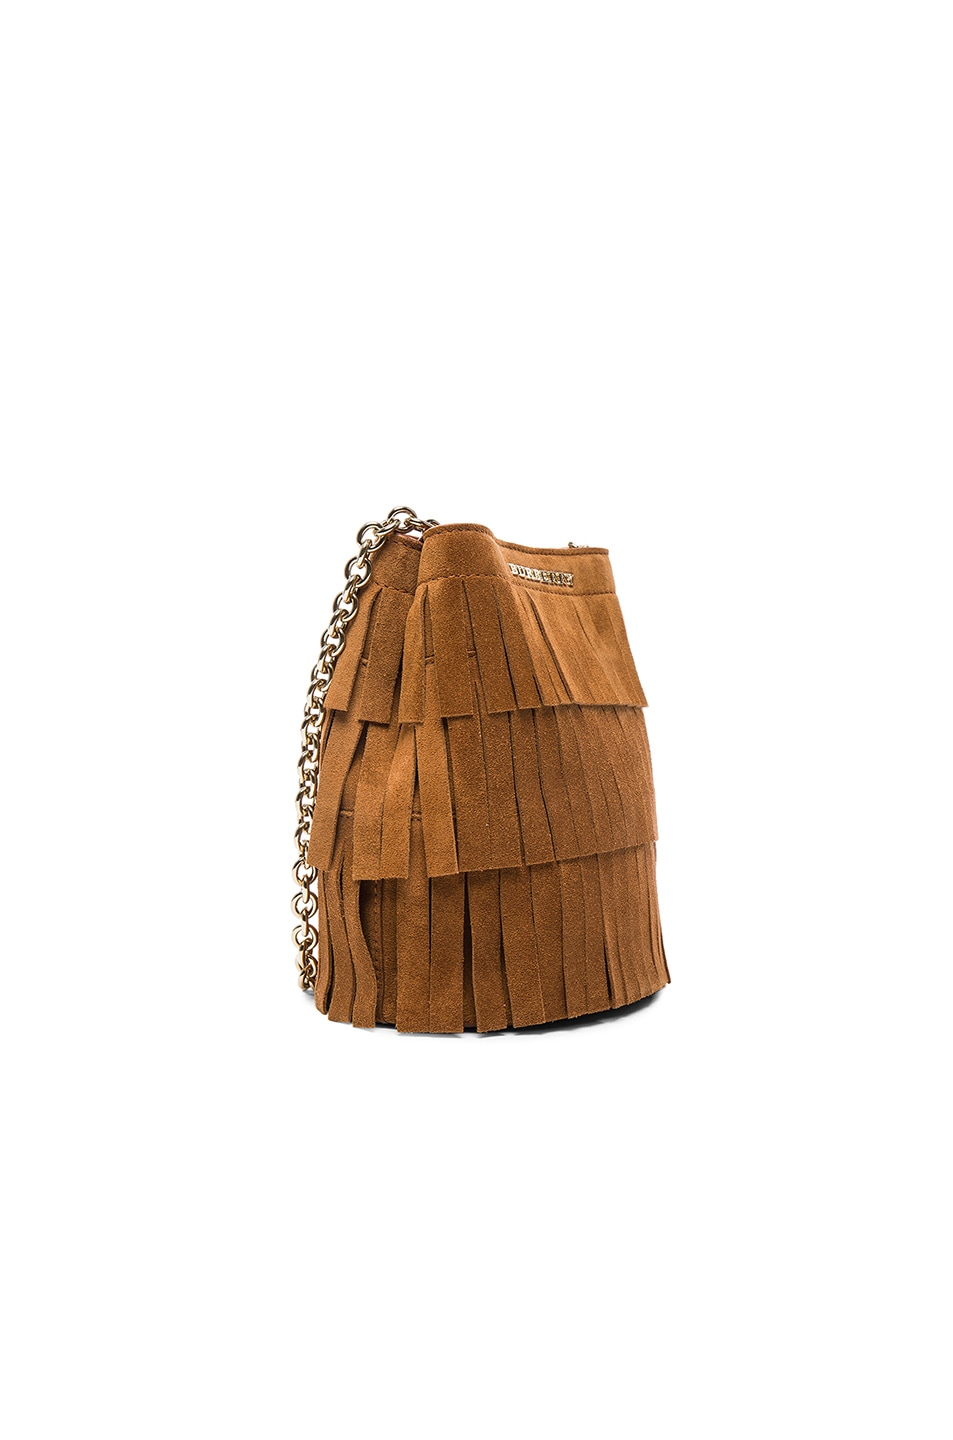 Image 3 of Burberry London Festive Fringed Suede Bucket Bag in Amber